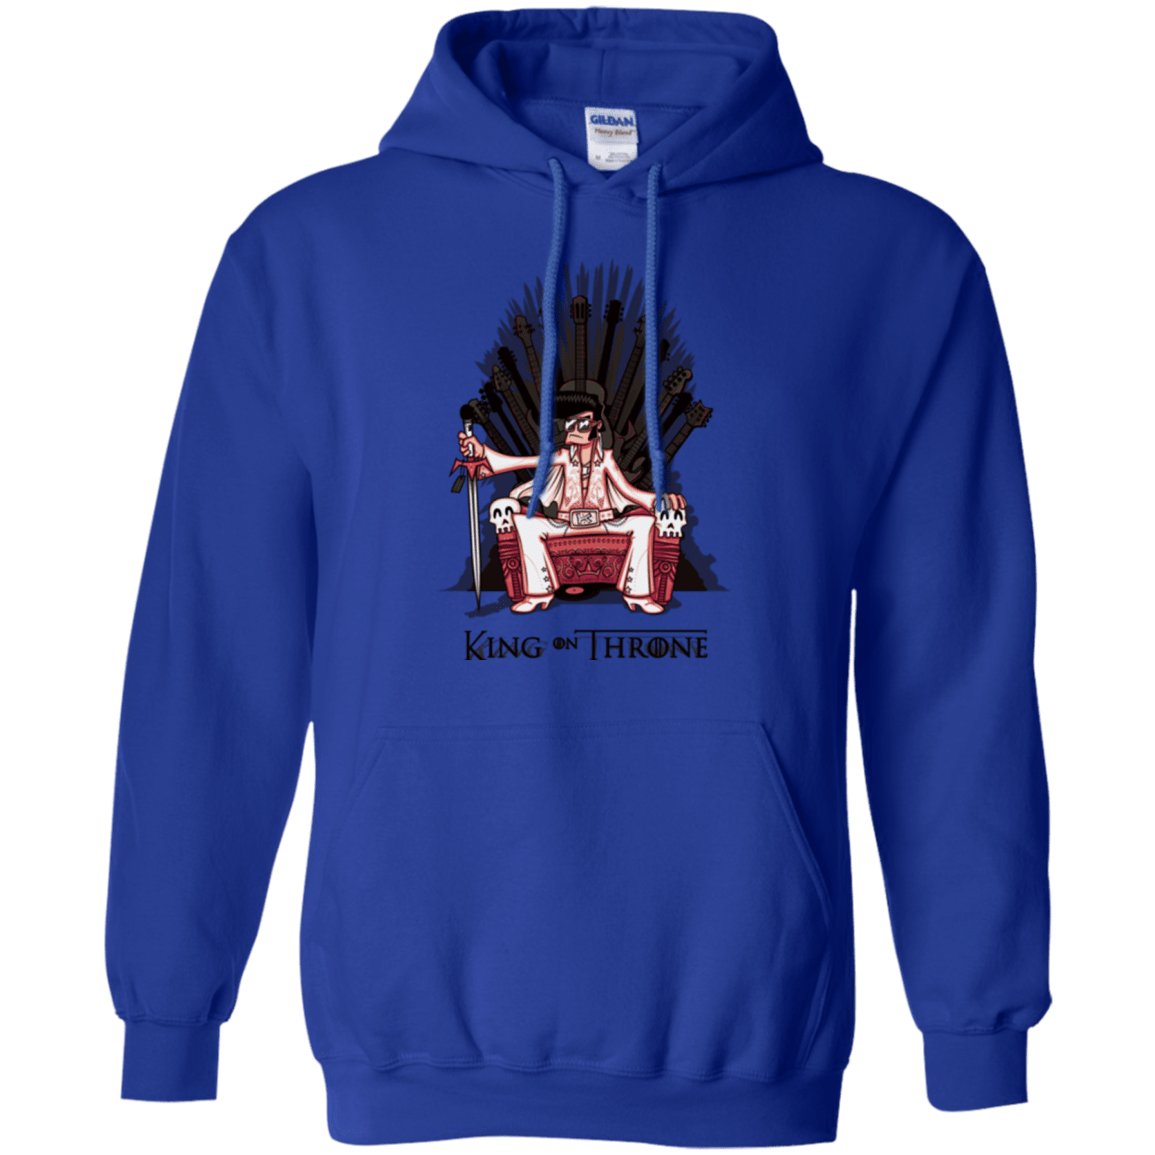 Sweatshirts Royal / Small King on Throne Pullover Hoodie